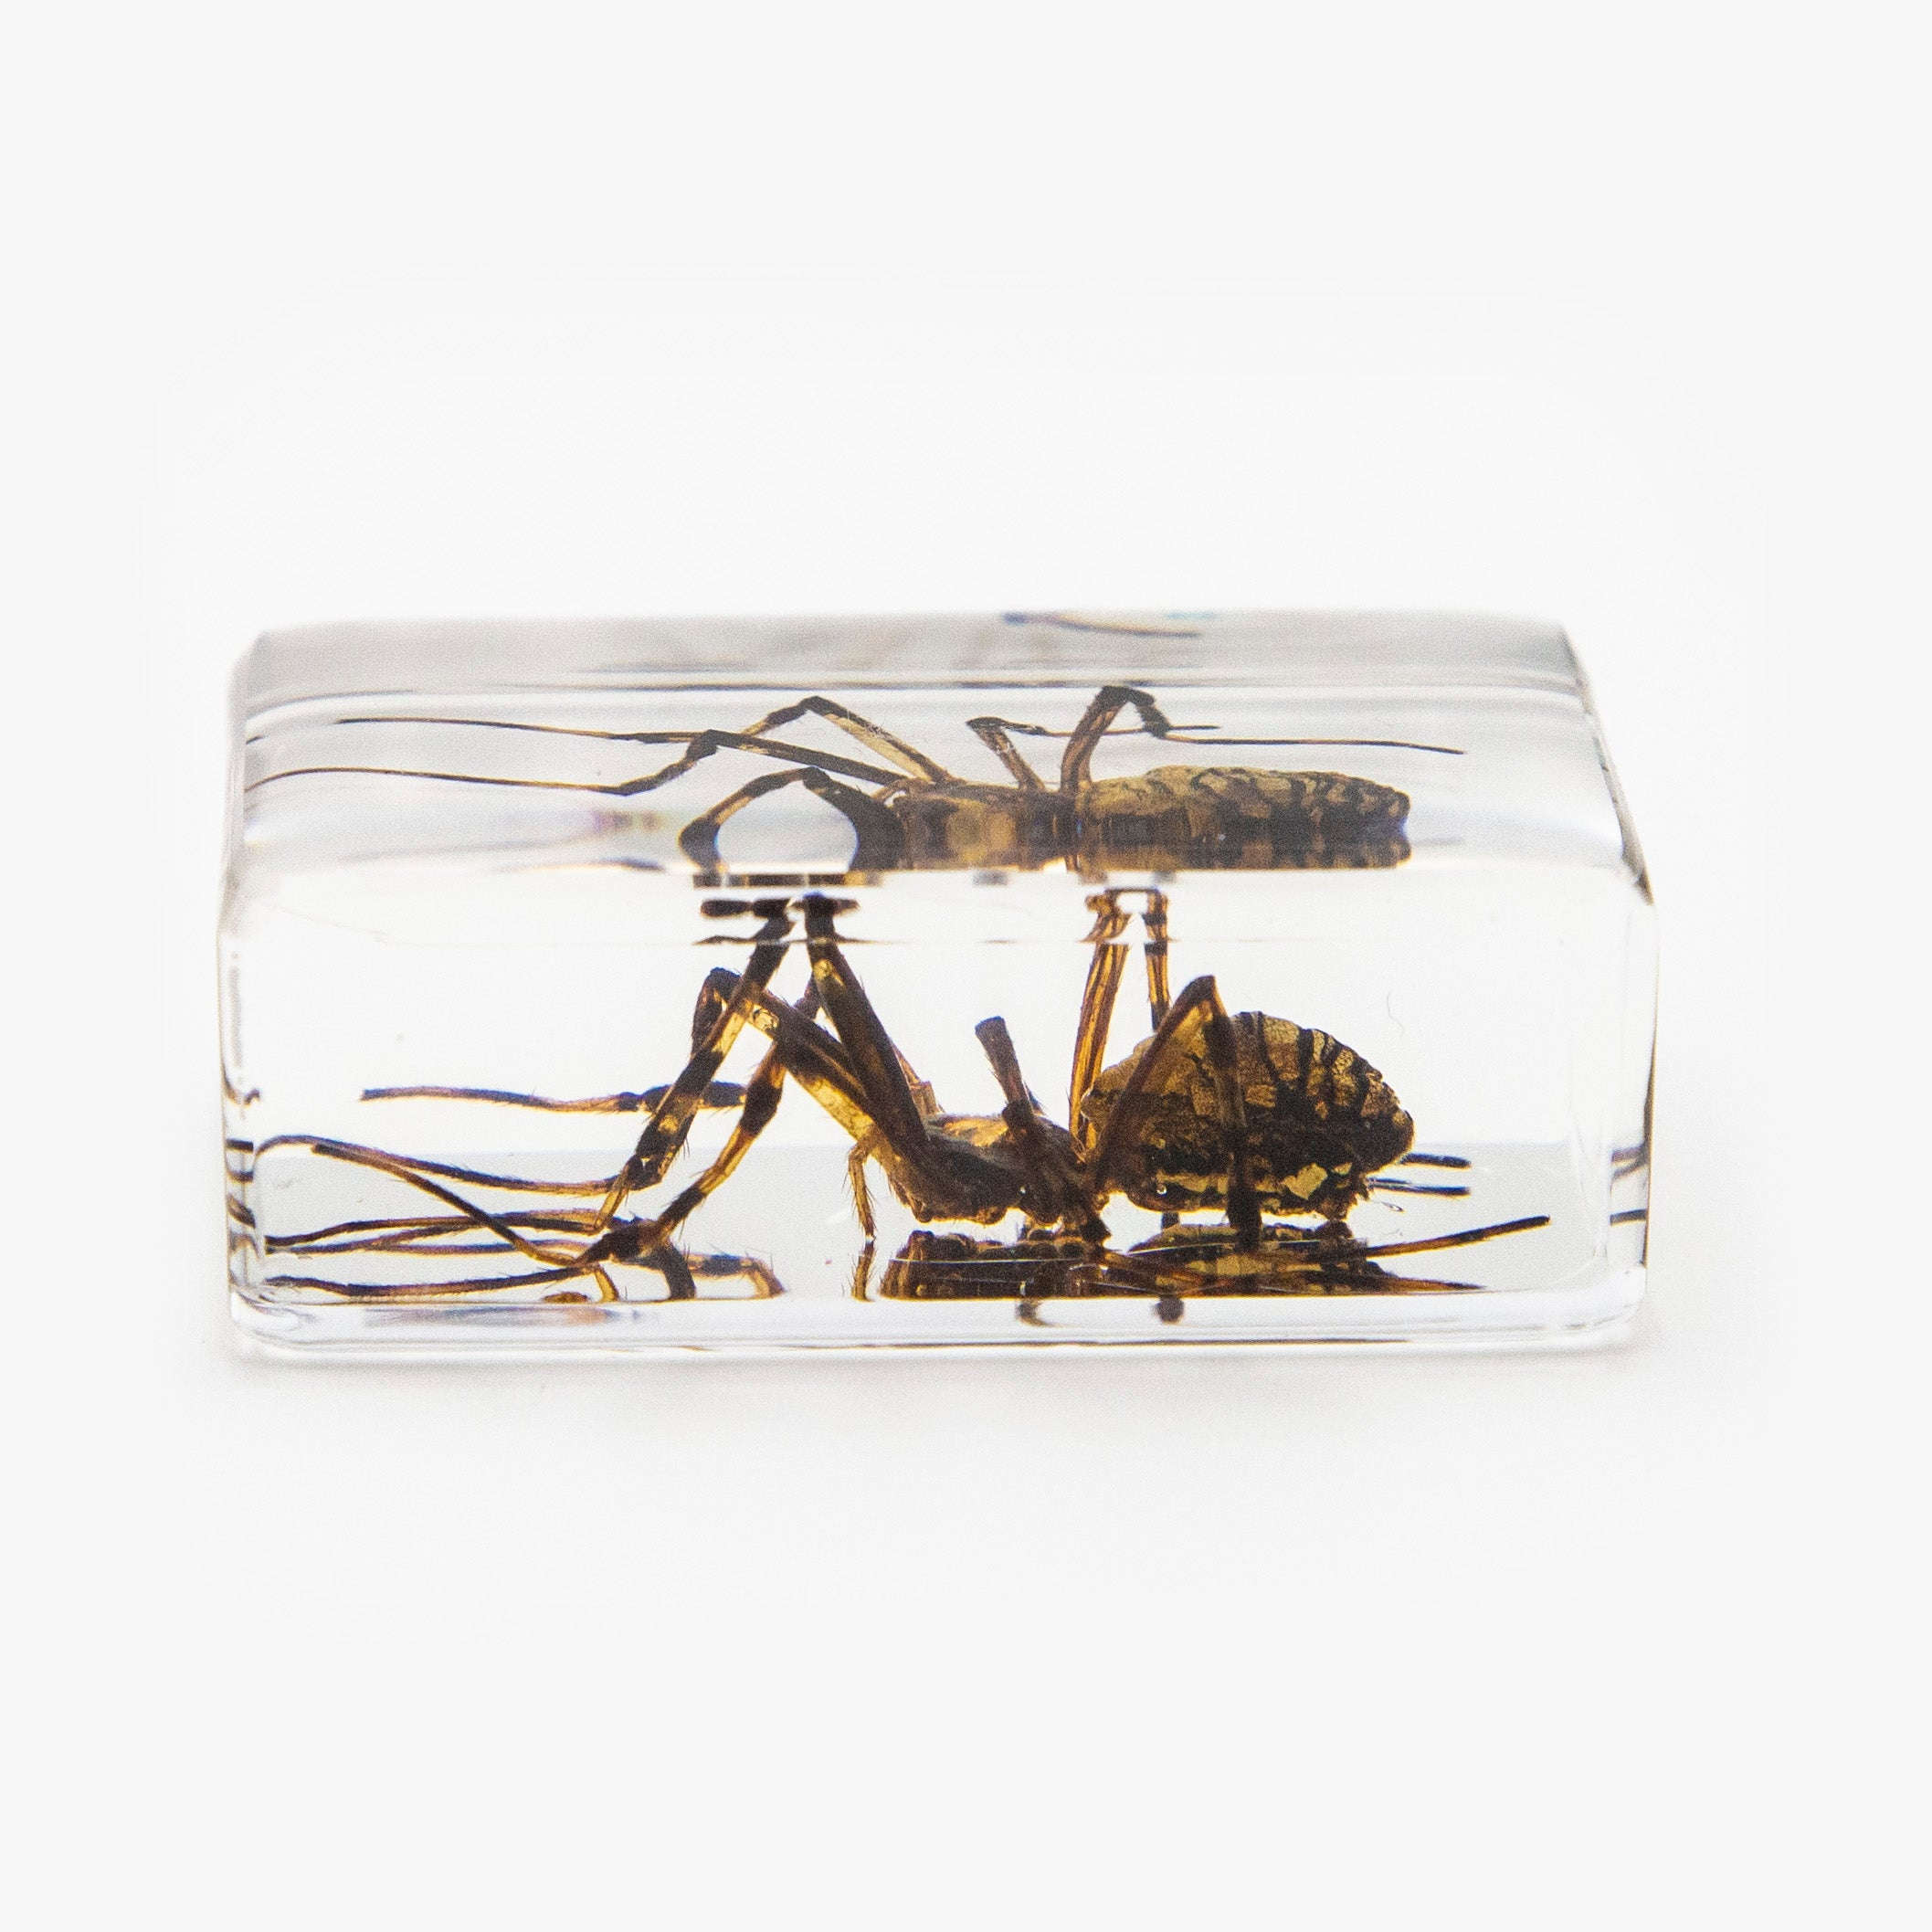 Spider Resin Paperweight (Small)